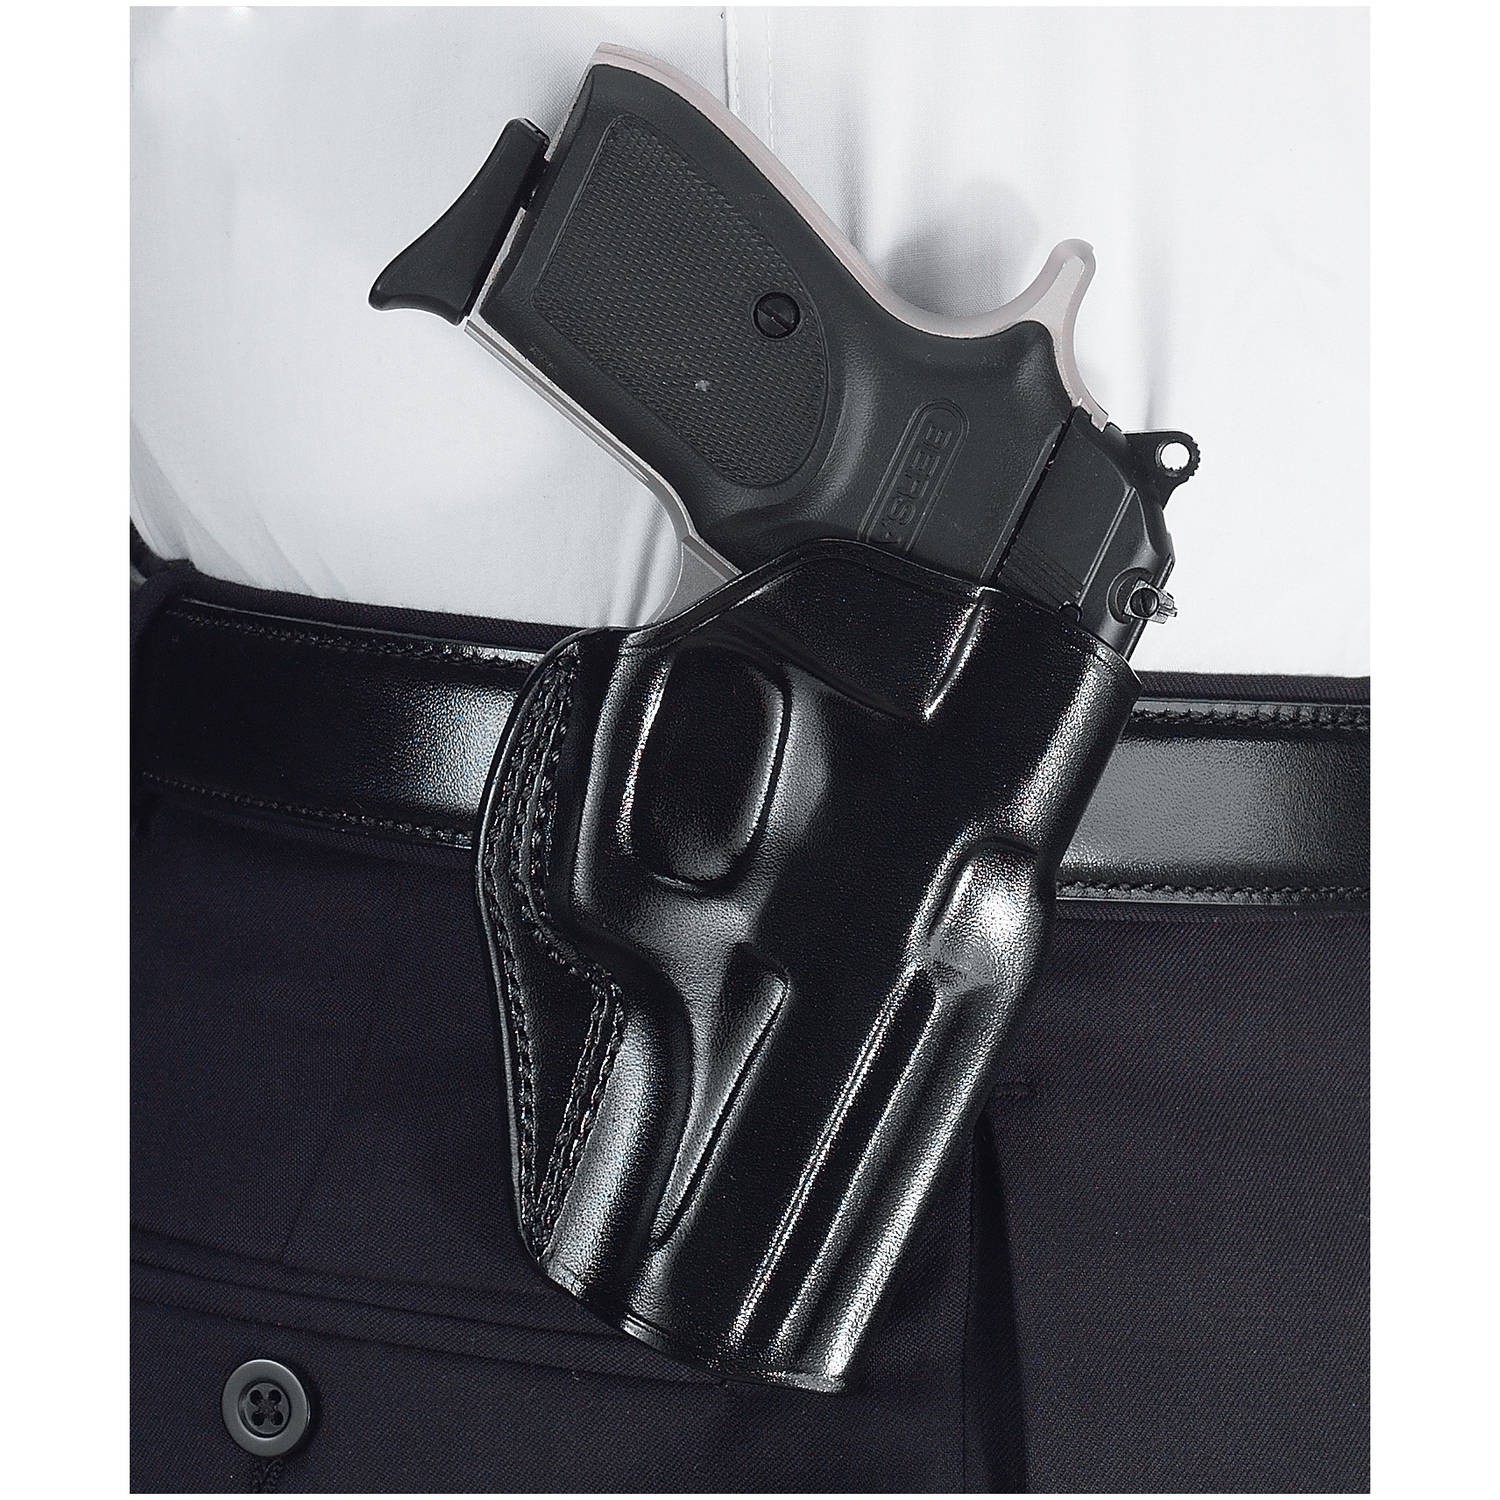 Galco Stinger Belt Holster, Fits Walther P22, Black Leather by Galco